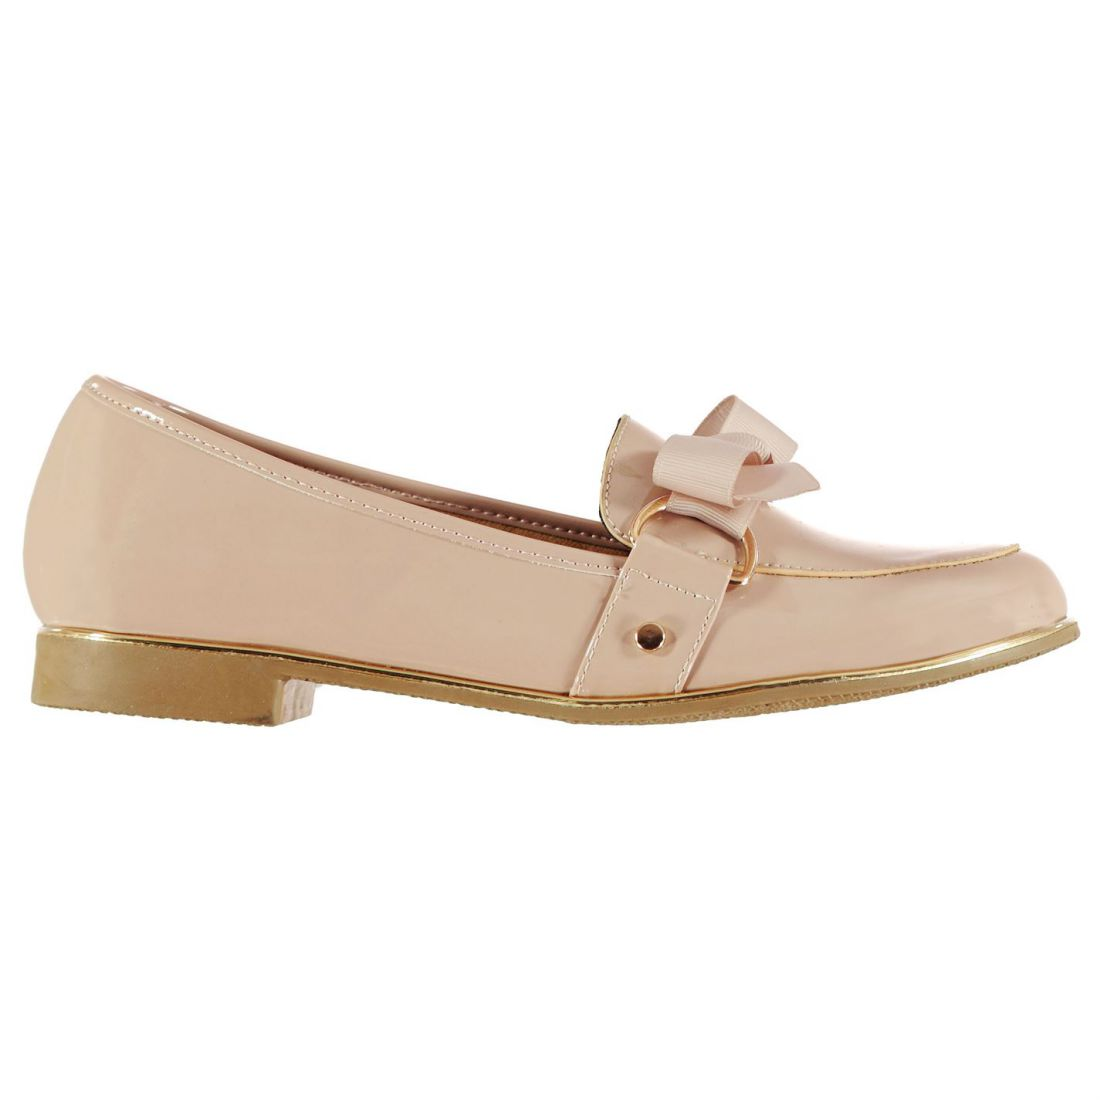 8a4081565fe Details about Miso Womens Bryony Bow Shoes Flats Slip On Comfortable Fit